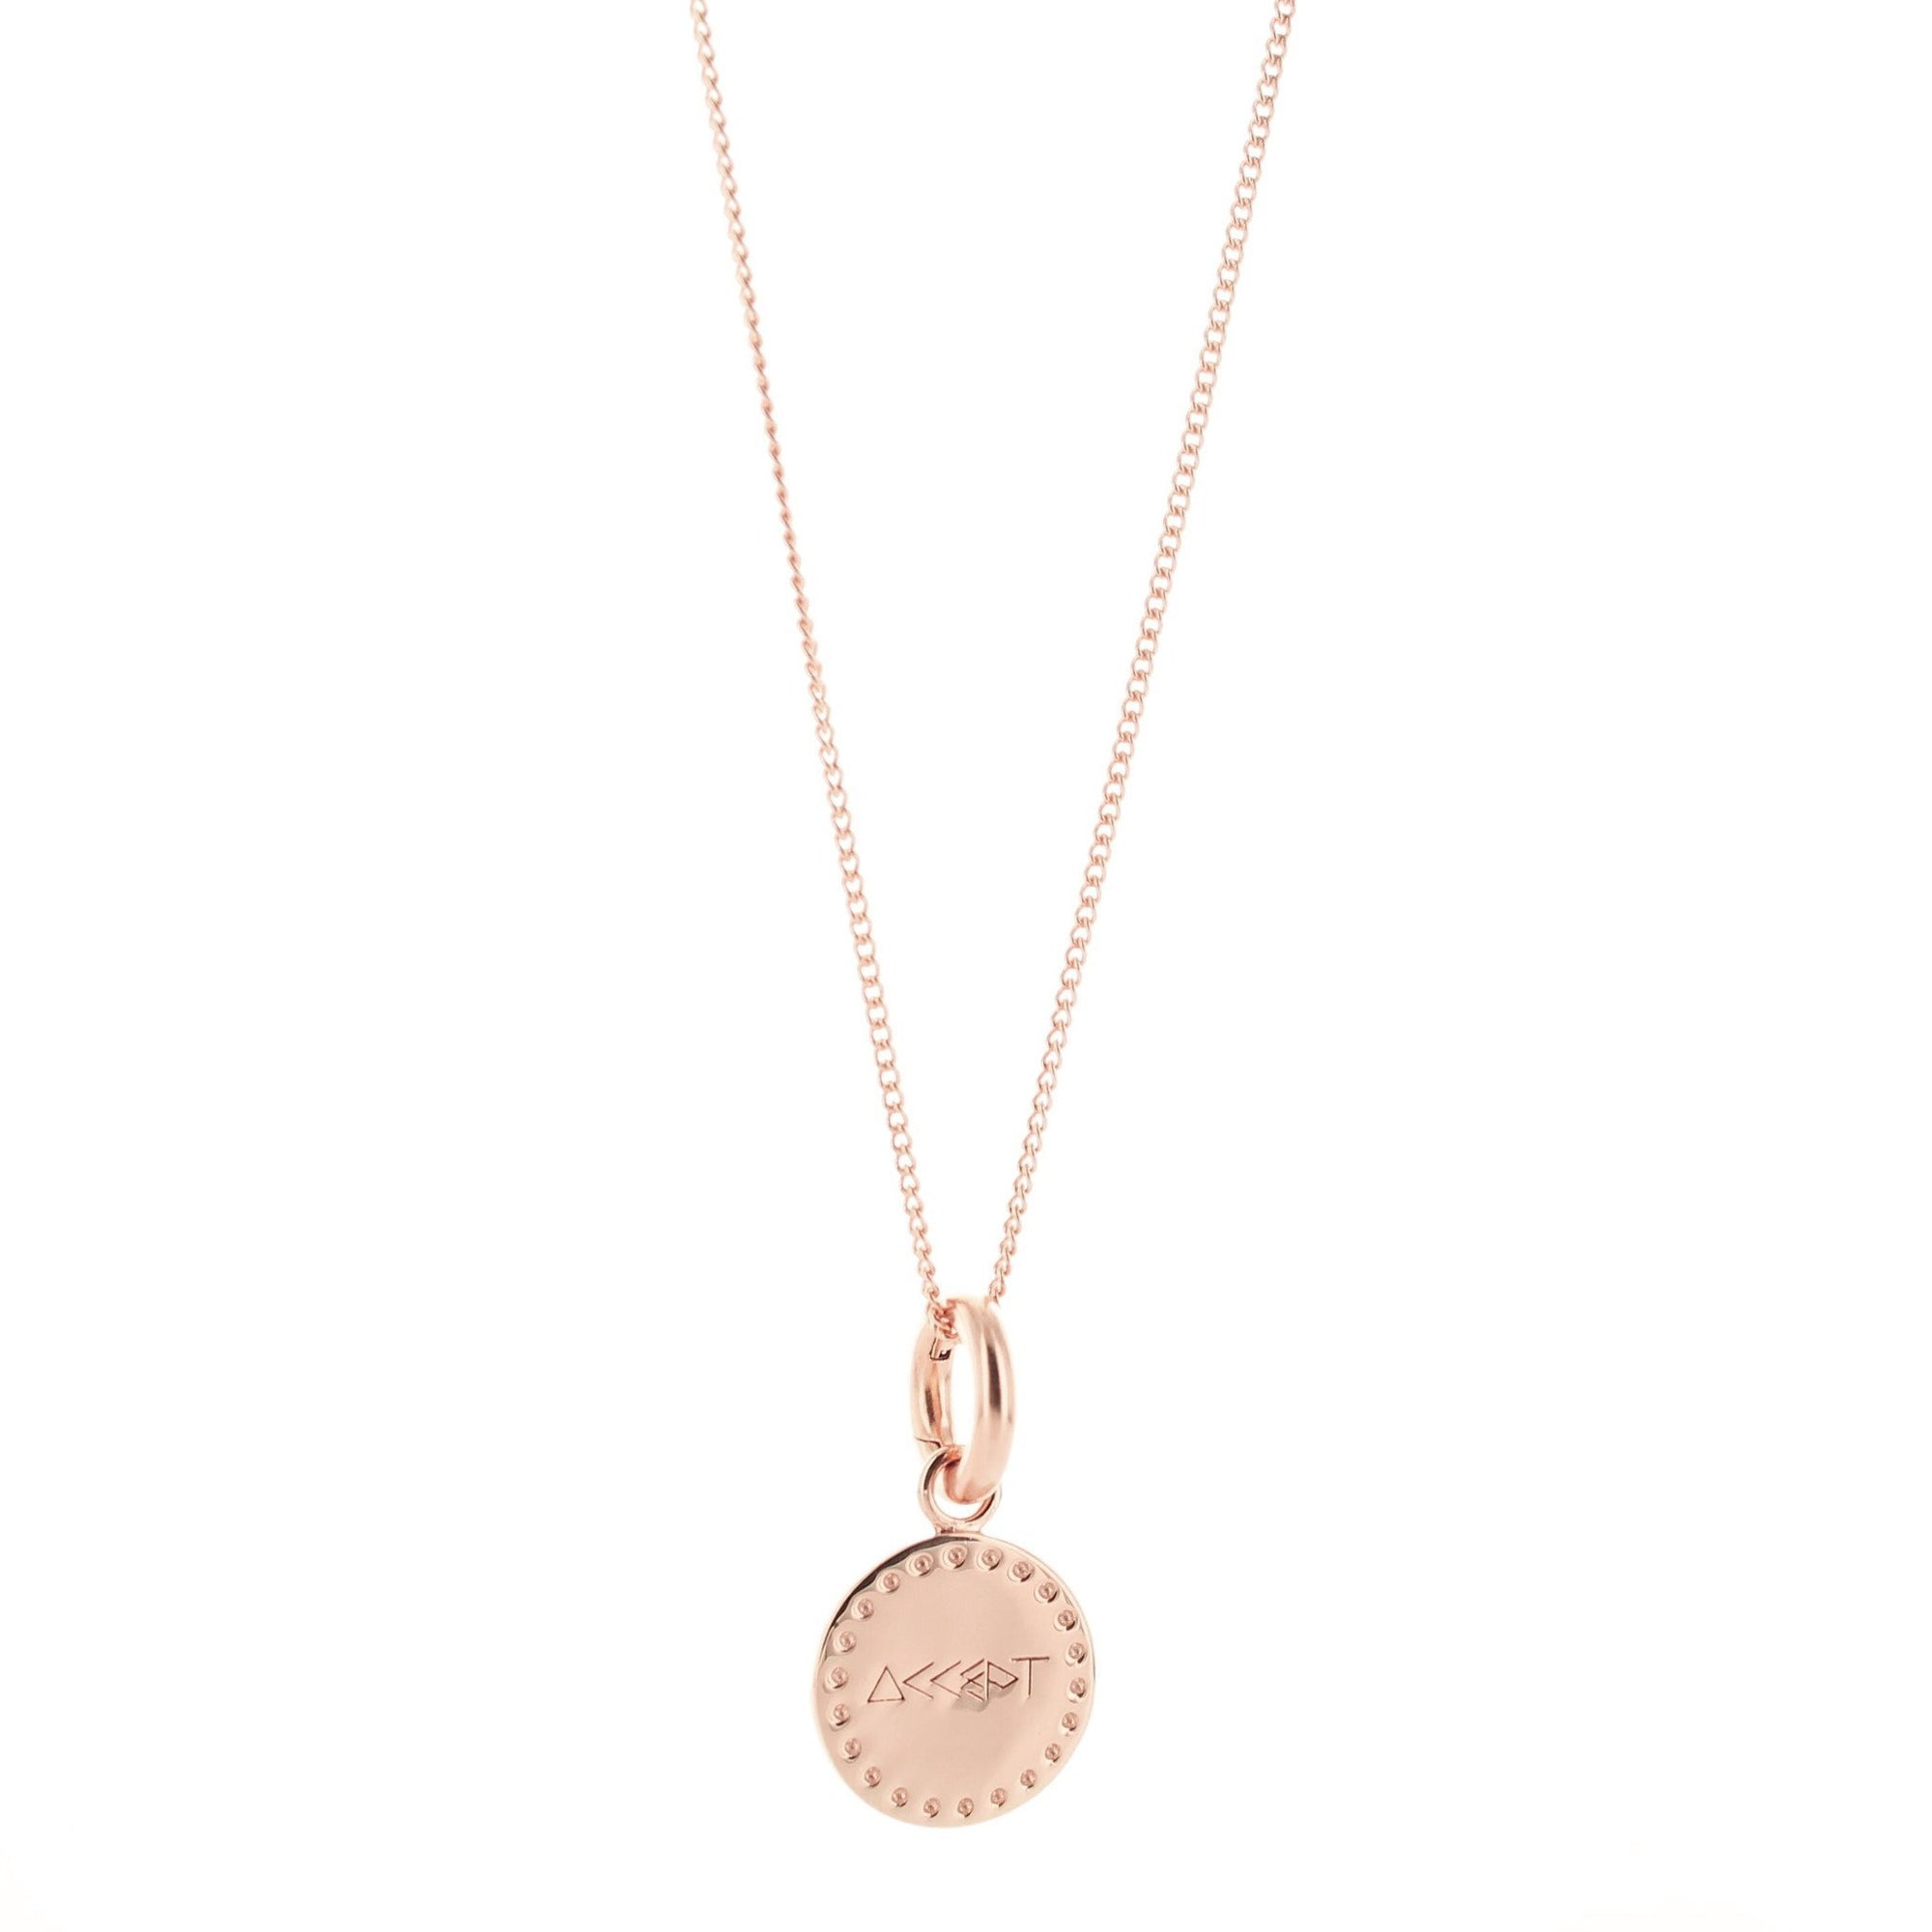 ACCEPT FLOATING CHARM PENDANT ALL METAL ROSE GOLD - SO PRETTY CARA COTTER